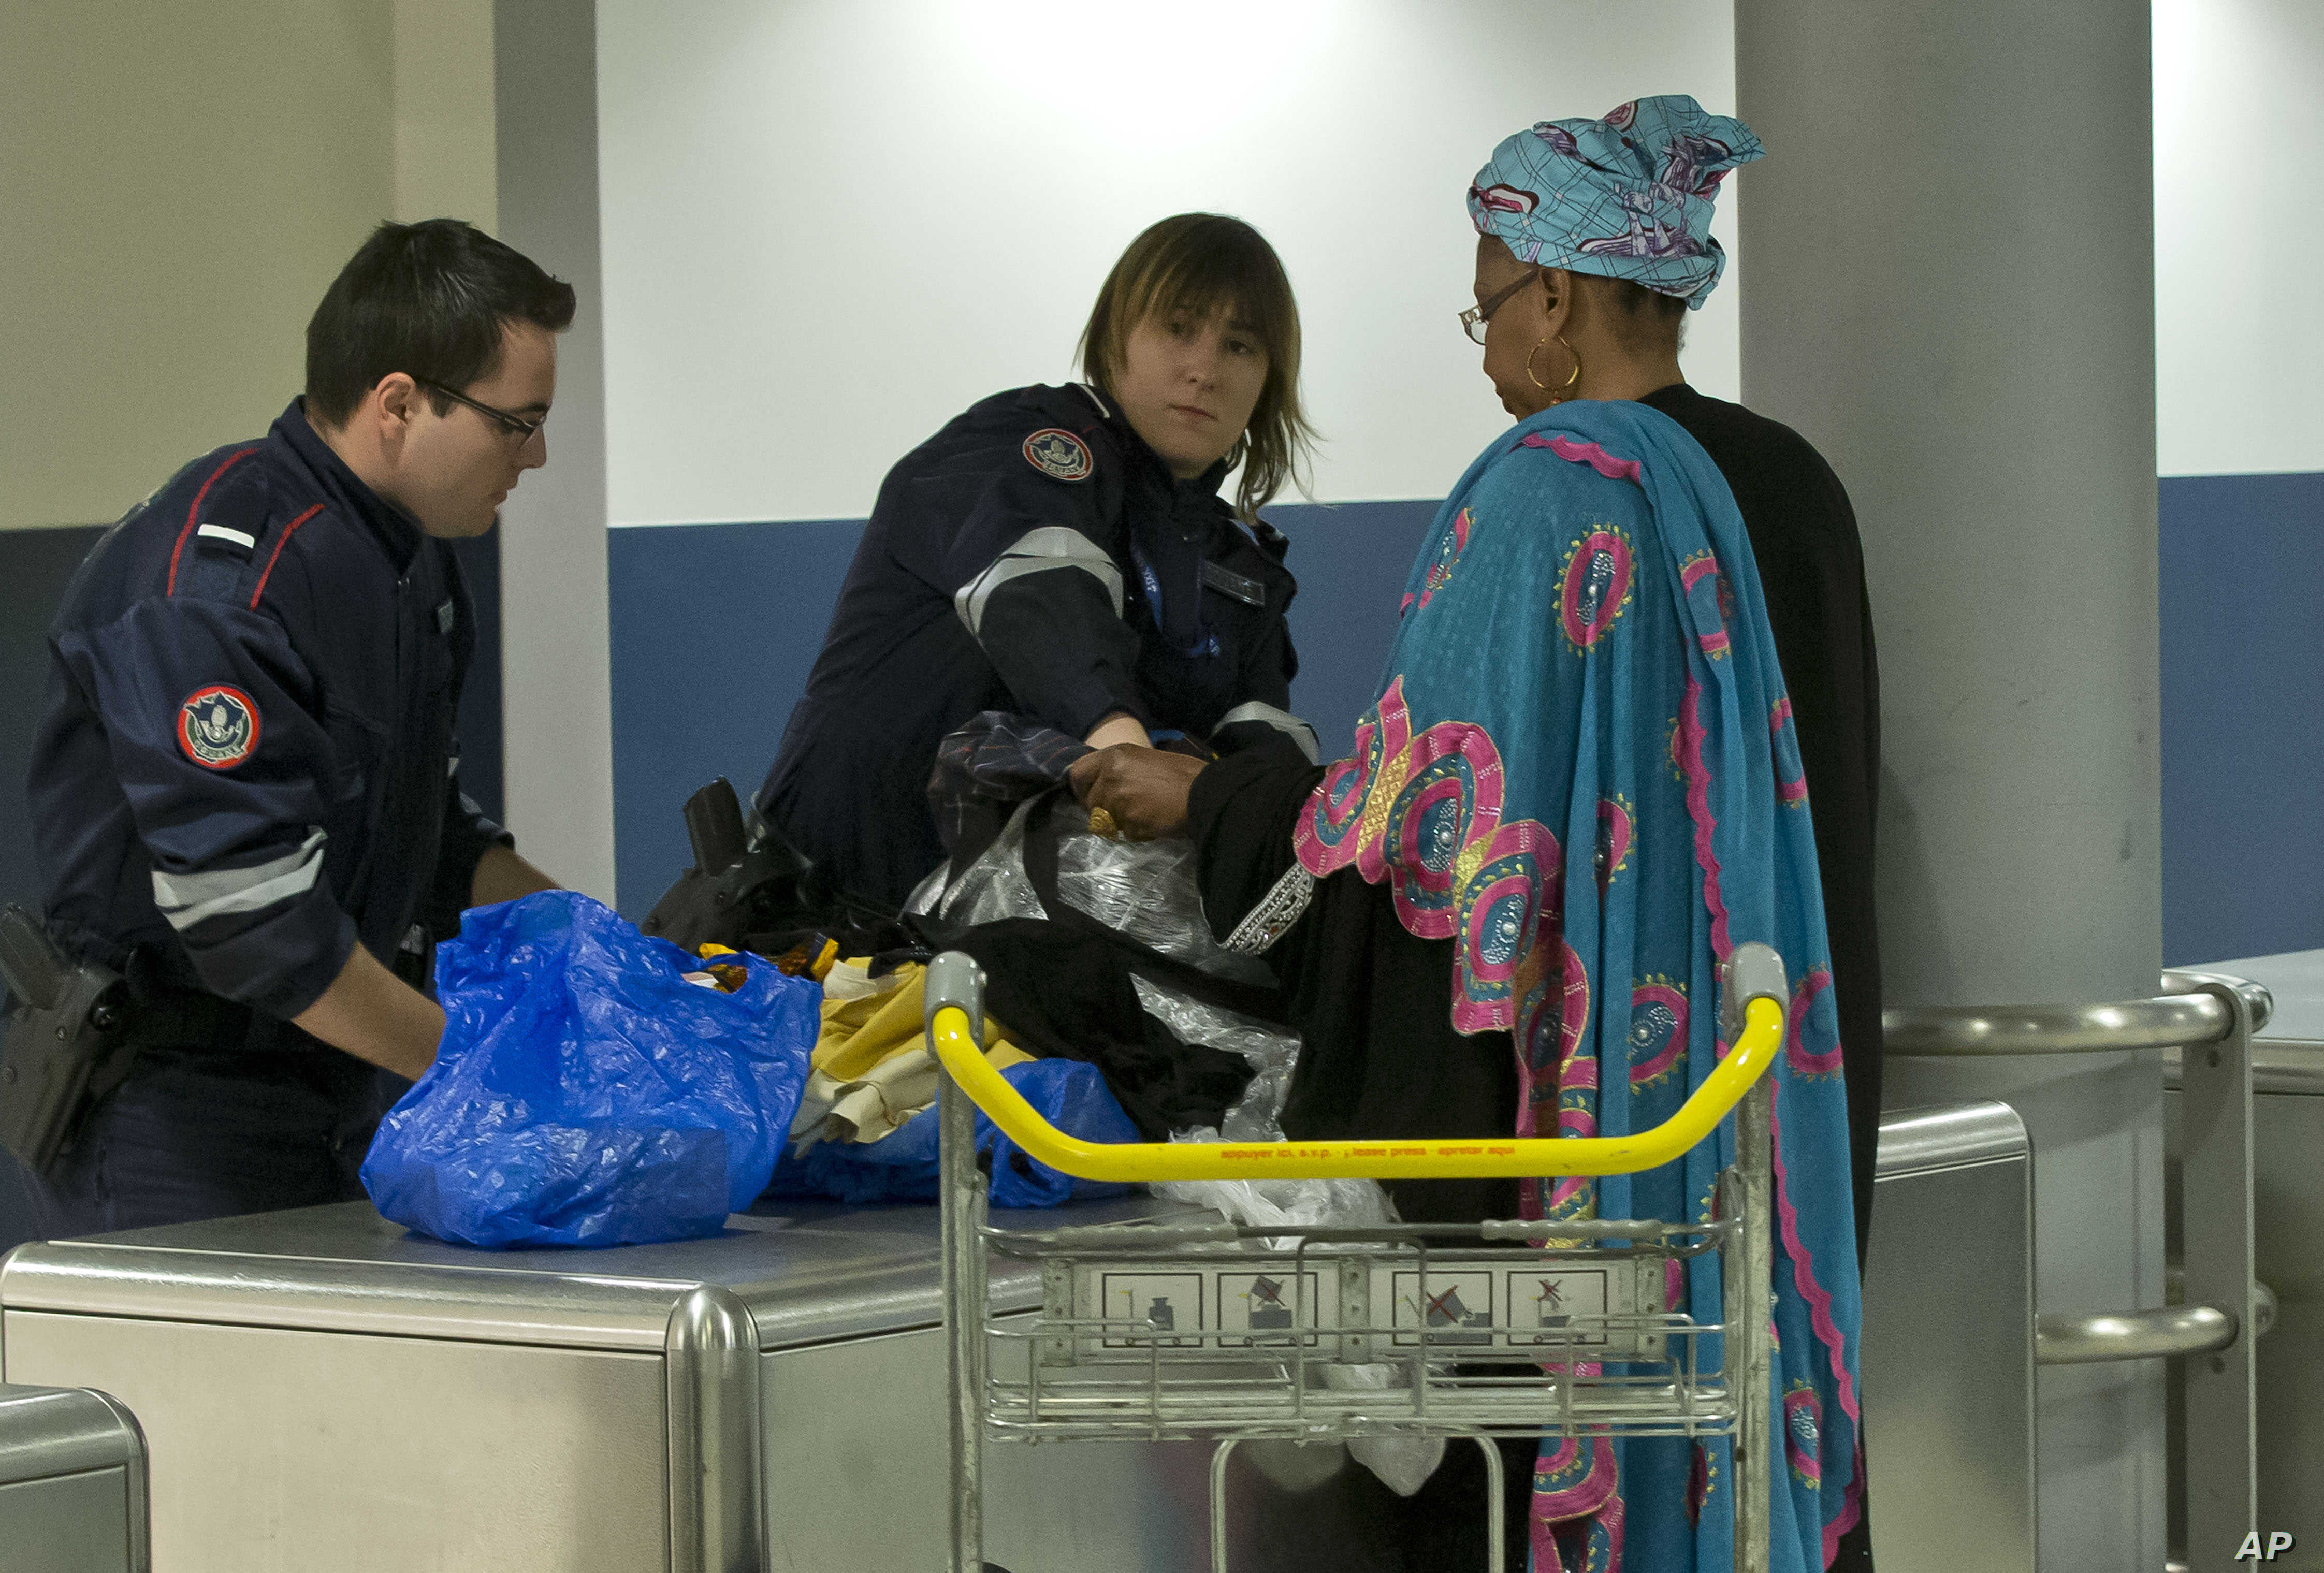 FILE - Custom officers check the luggage of a passenger at Charles de Gaulle airport, in Roissy, north of Paris, March 23, 2016.